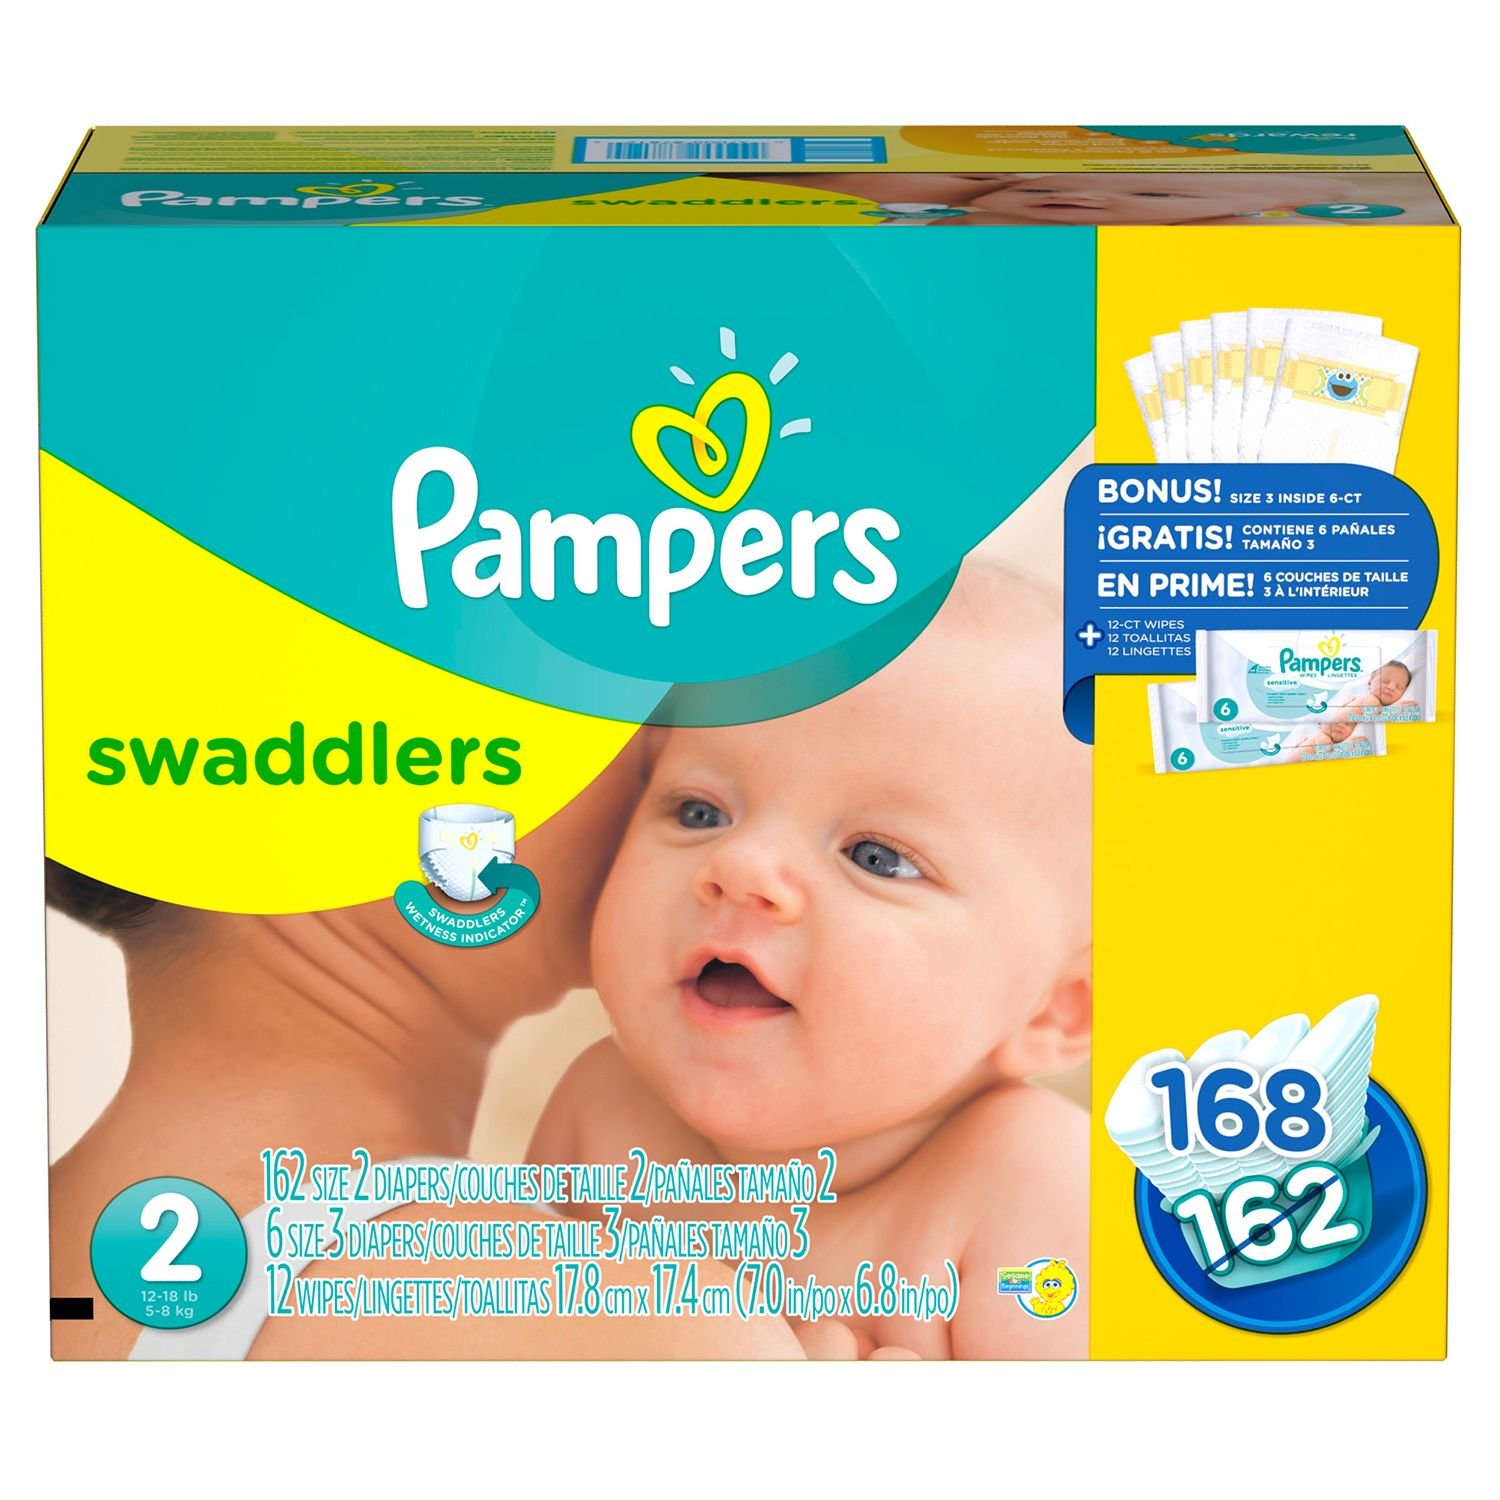 Pampers Swaddlers Diapers, Size 2 (12-18 lbs.), 162 ct.